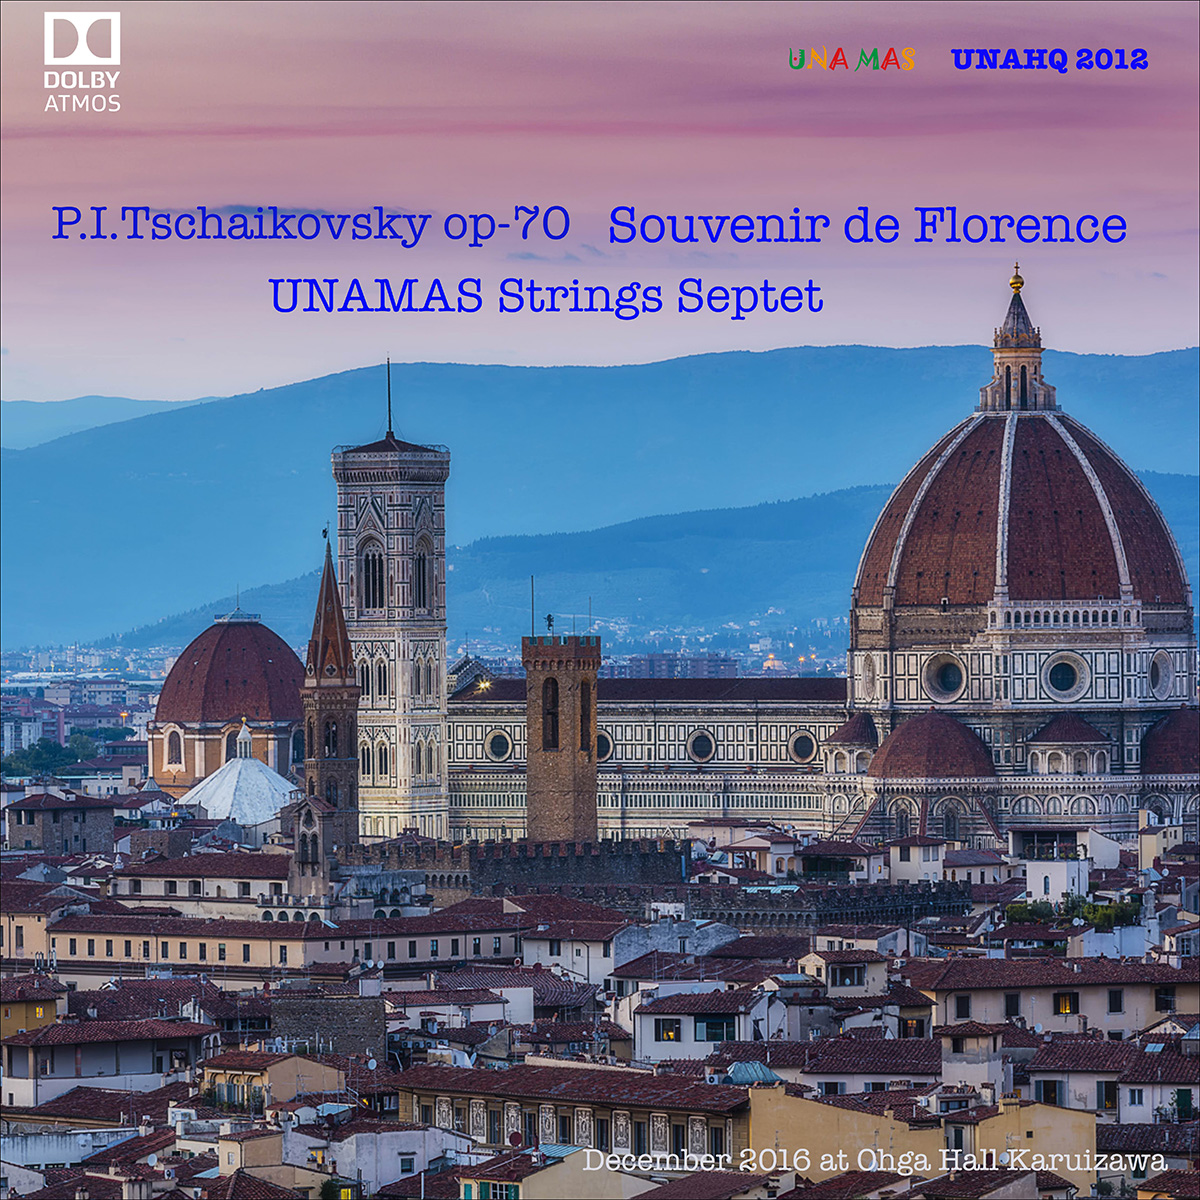 UNAHQ 2012 FLORENCE - Dolby Atmos